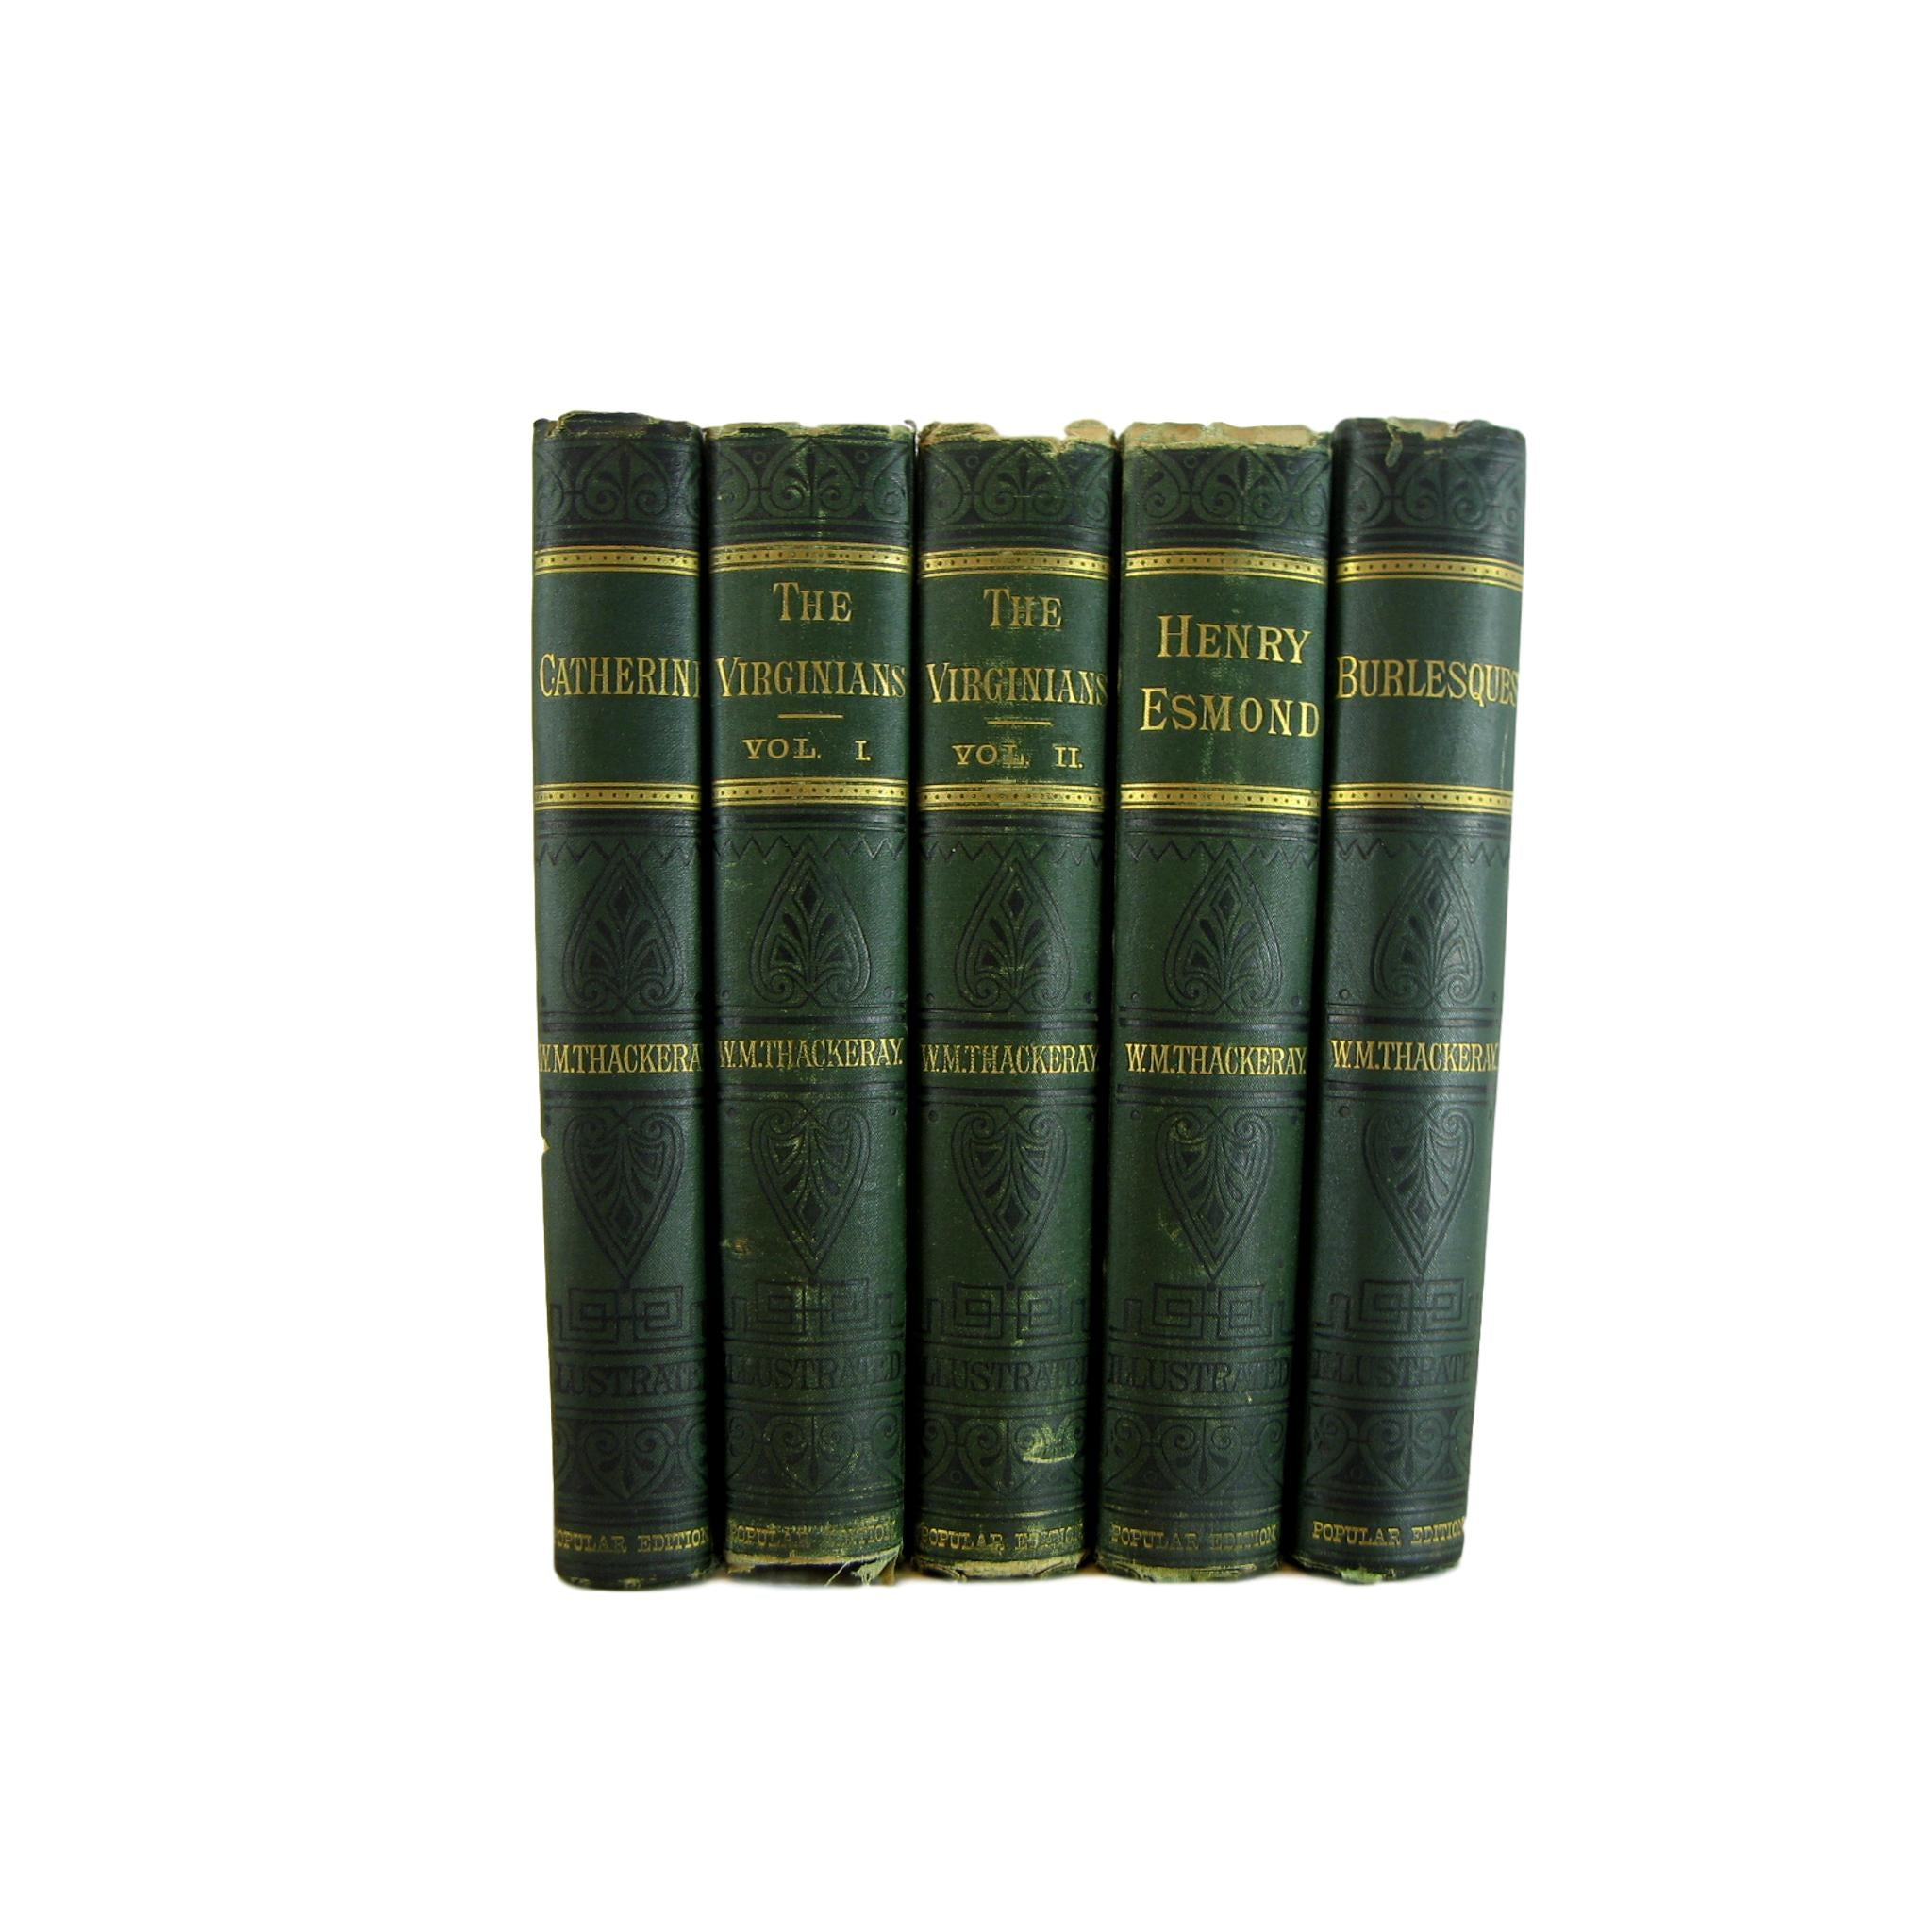 Works of Thackeray, Antique Books for Shelf Decor, S/5 - Decades of Vintage